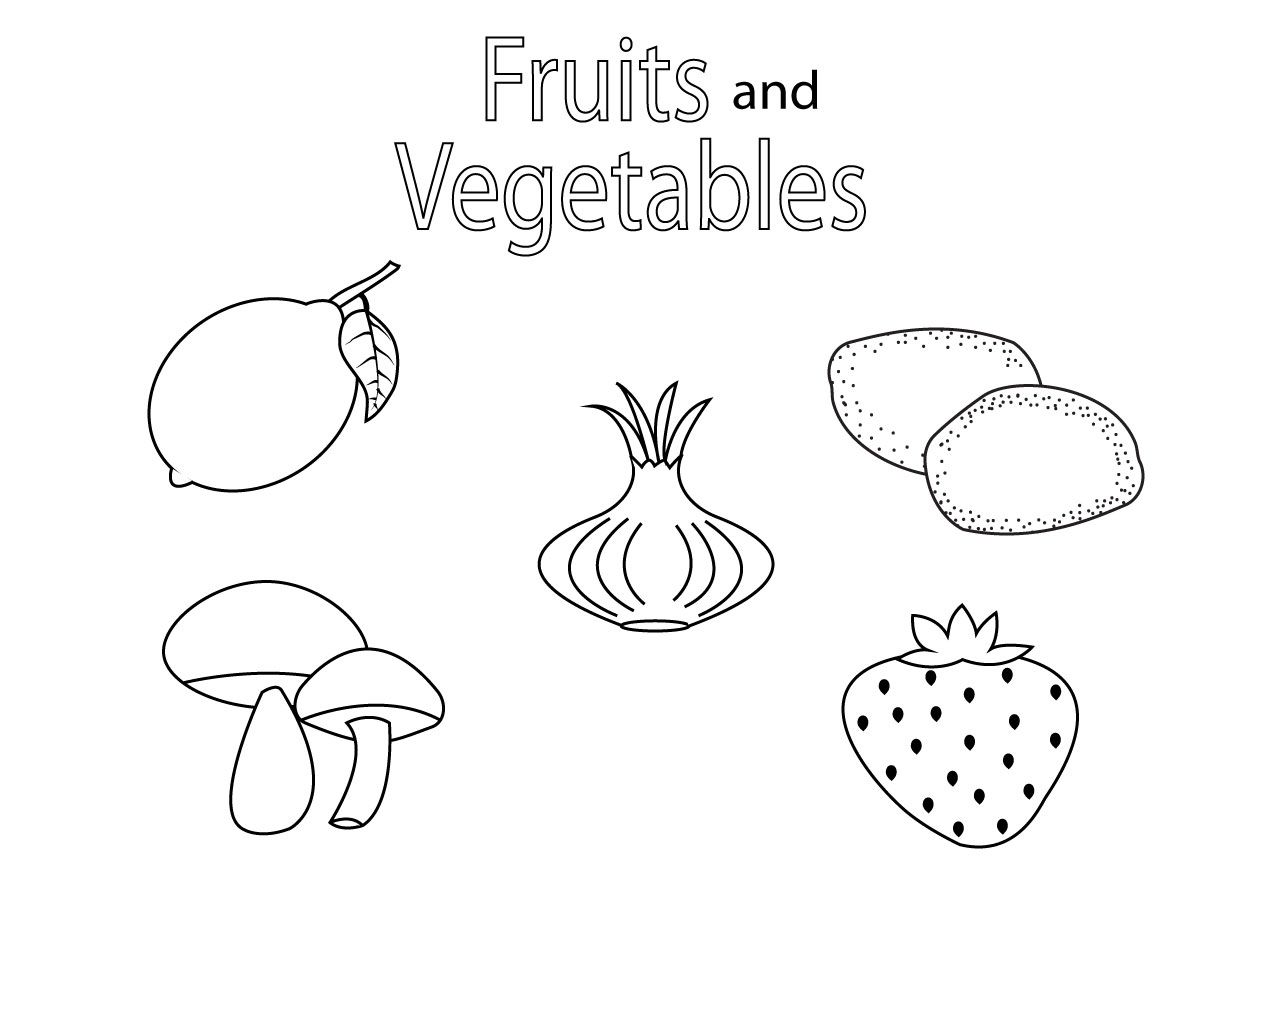 Fruit And Vegetables Coloring Pages For Kids We All Love